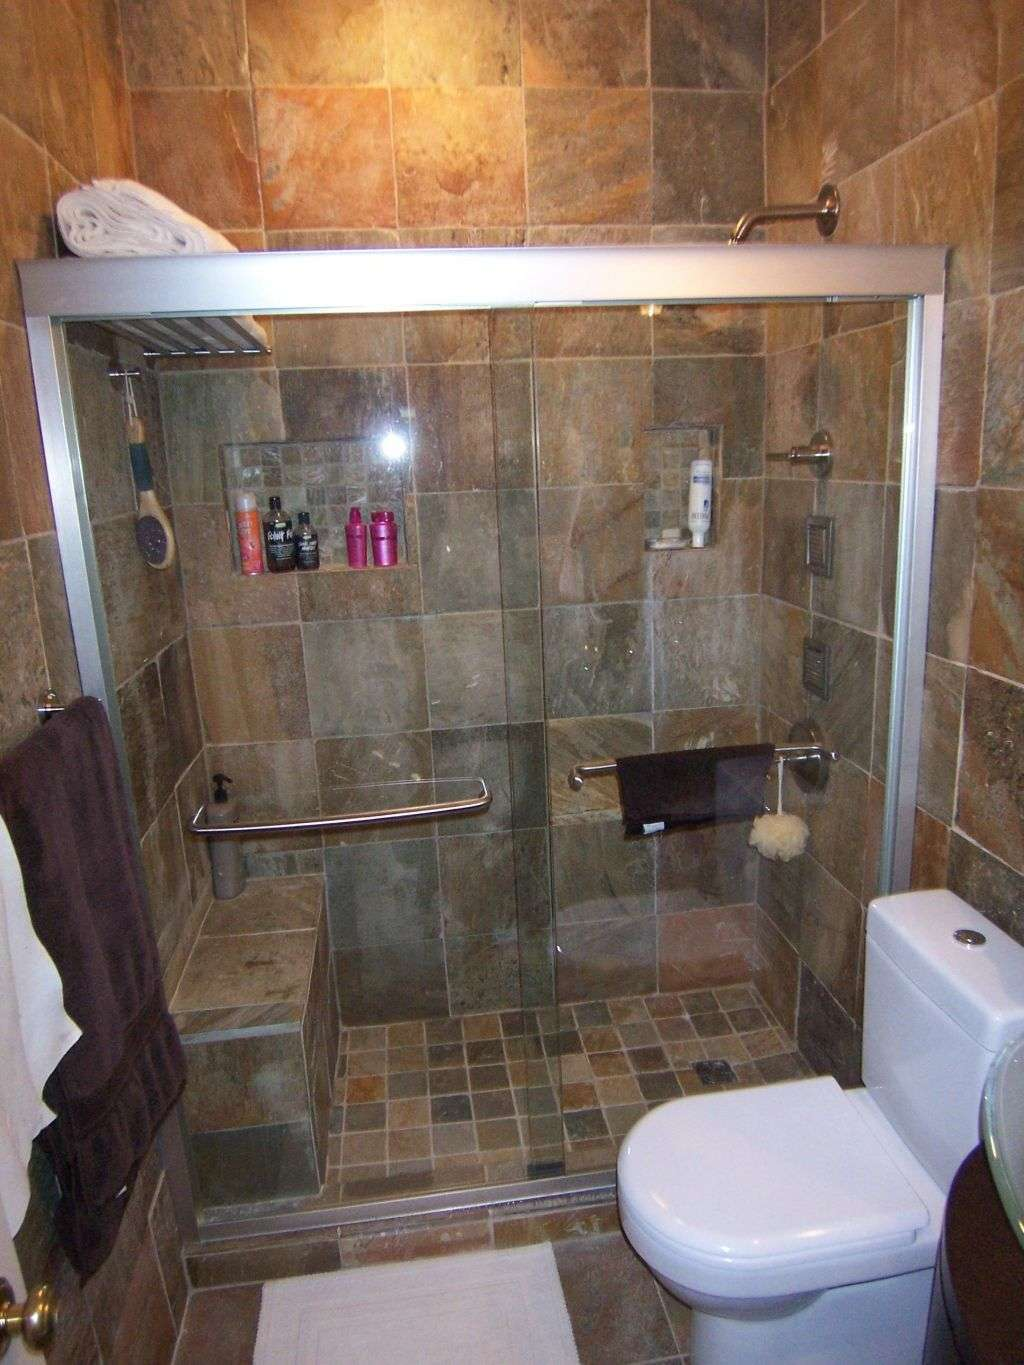 15 Latest Small Bathroom Designs For Small Spaces on Bathroom Ideas Small Spaces  id=27051